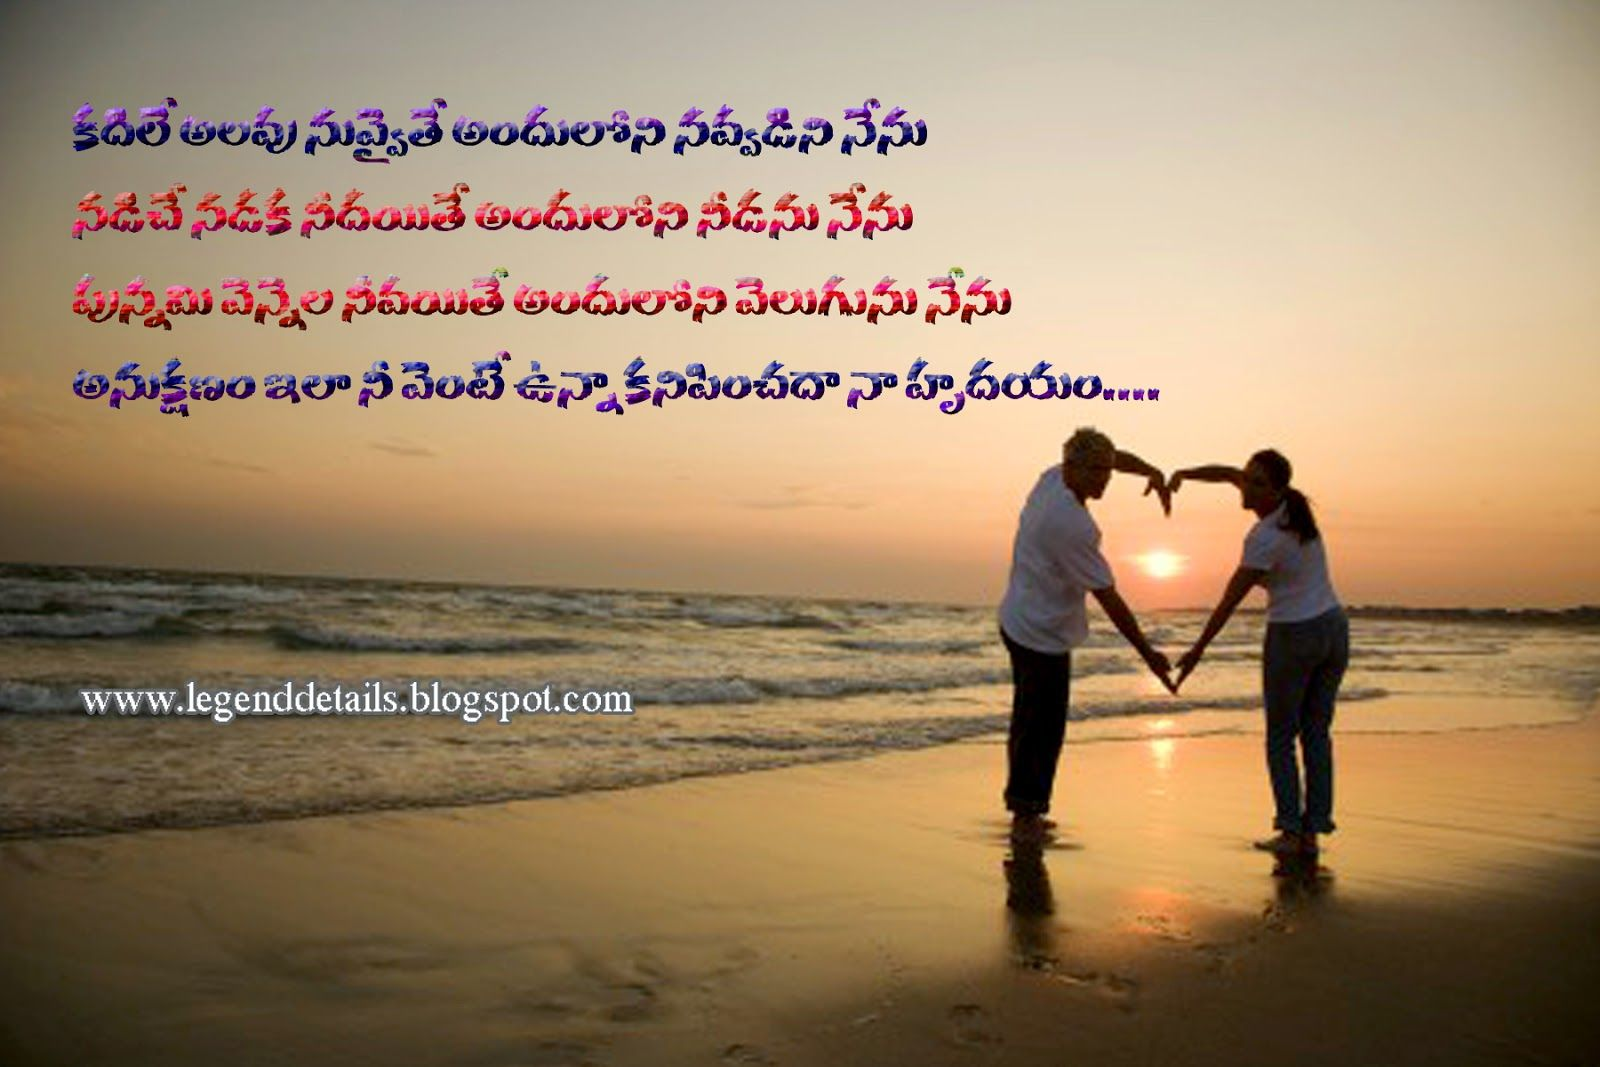 Love Quotes in telugu with images - The Legendary Love Telugu Love ...